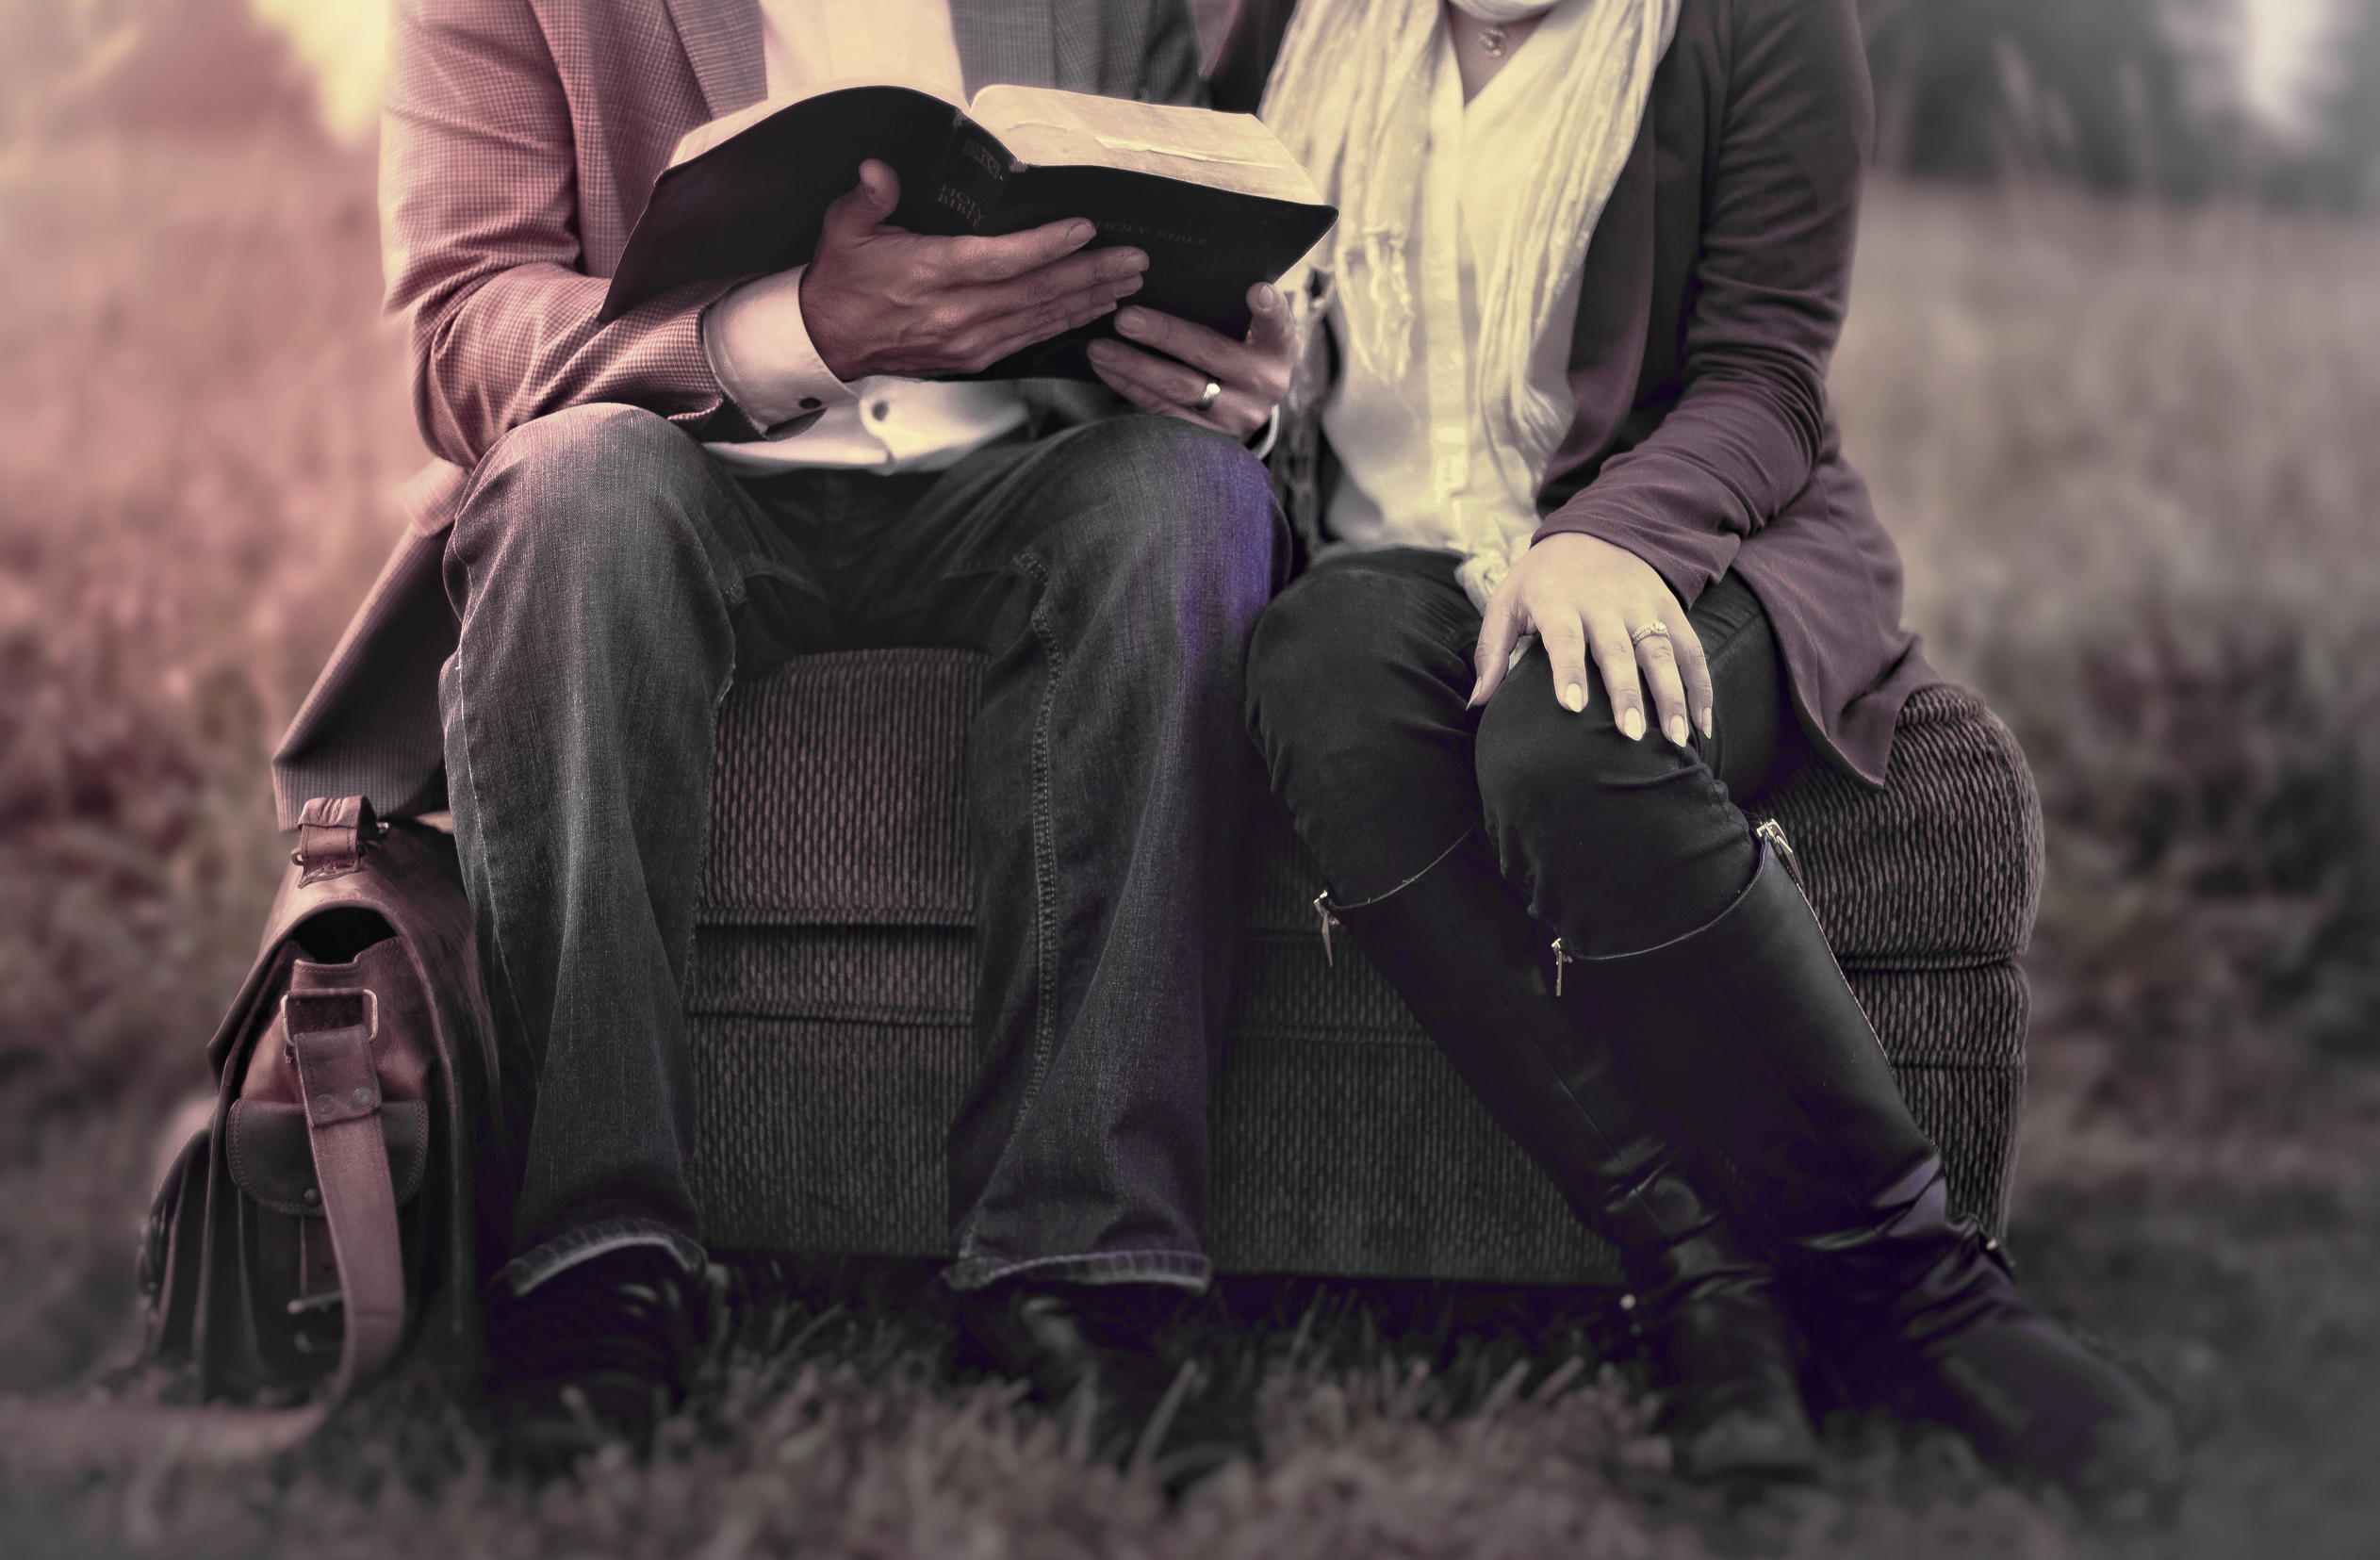 Couple in love reading outdoors - washed-out effect photo